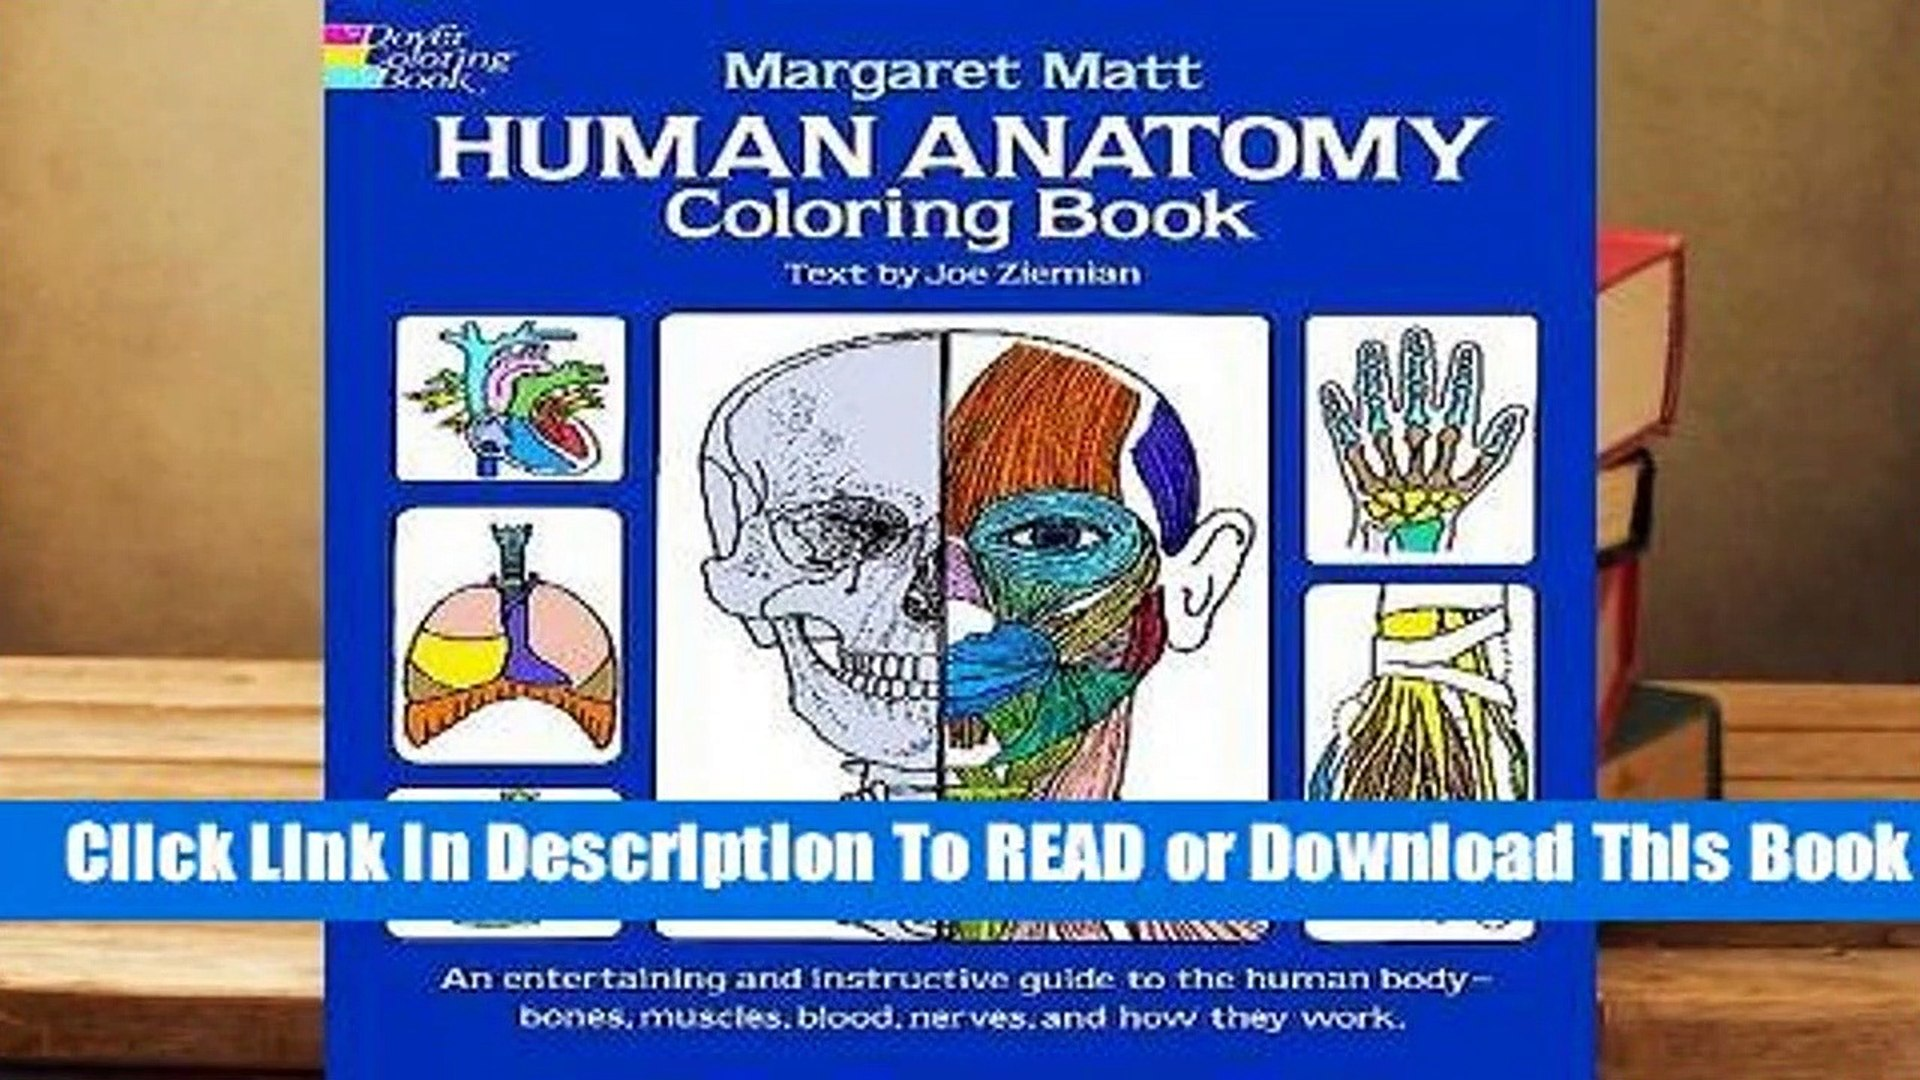 [Read] Human Anatomy Coloring Book For Online